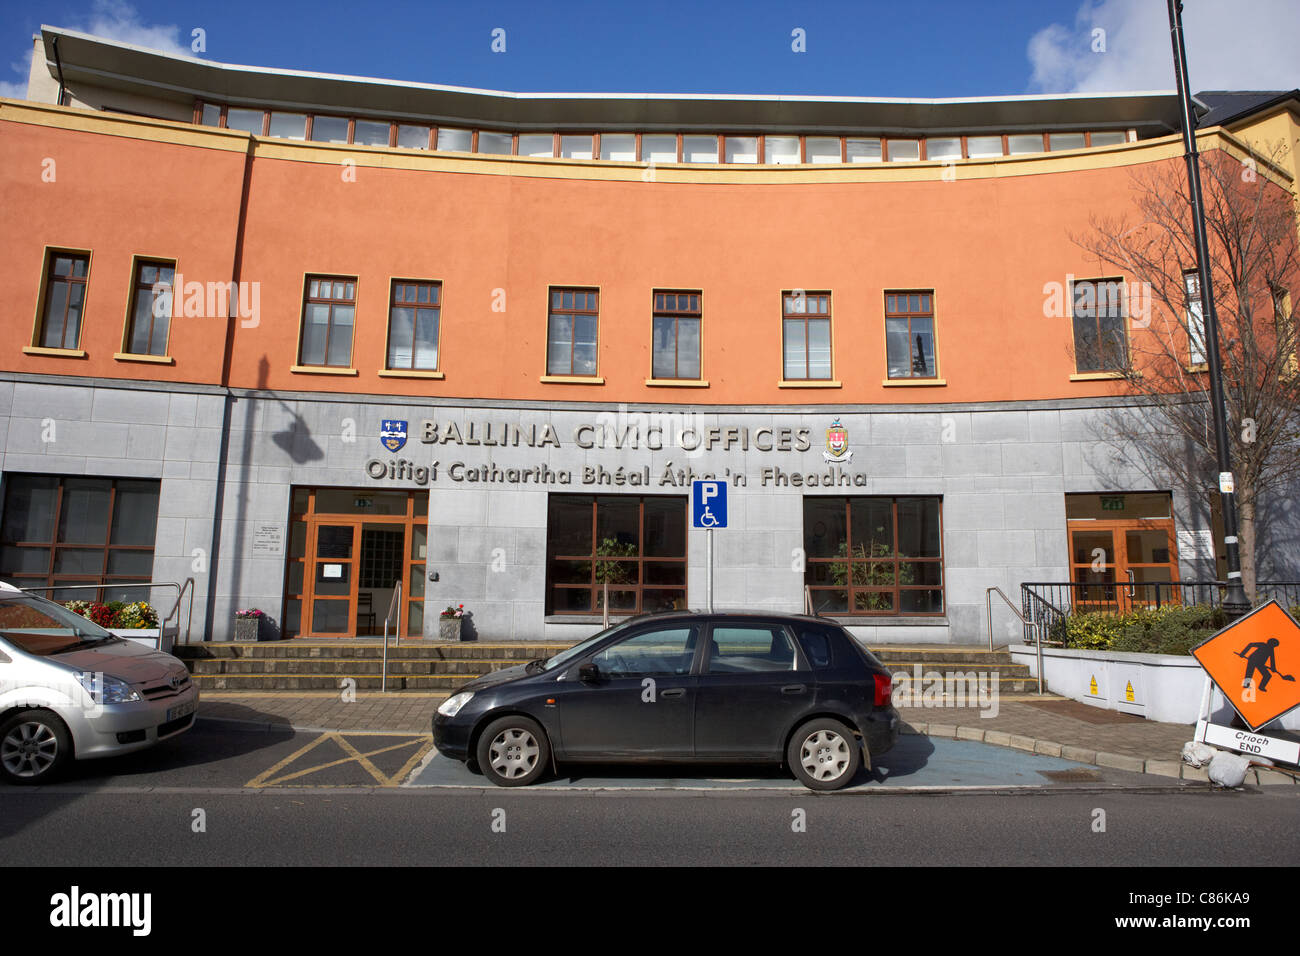 ballina civic offices town council county mayo republic of ireland - Stock Image